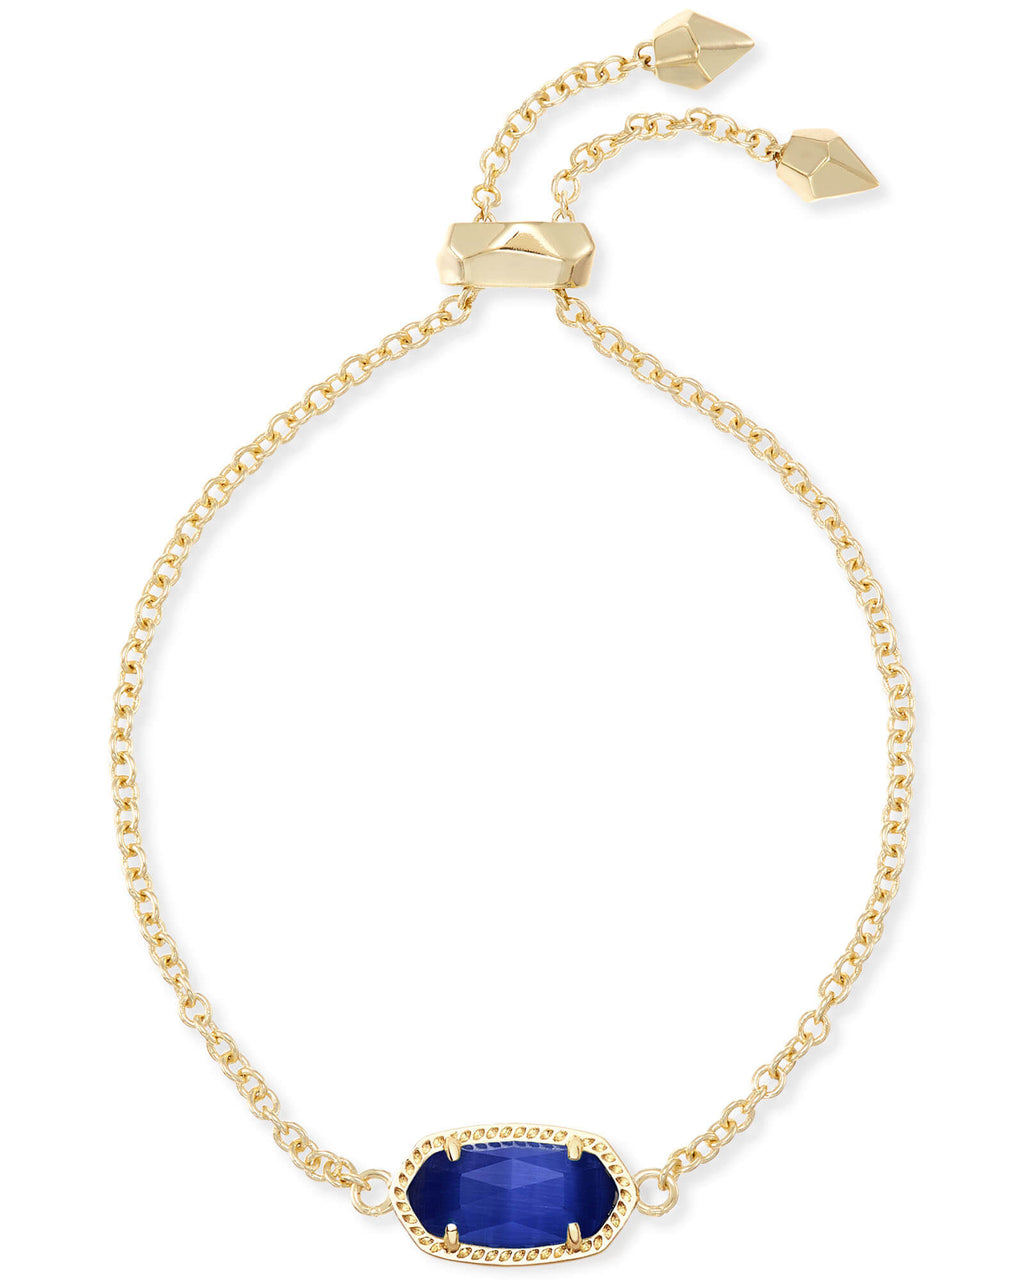 Kendra Scott Elaina Gold Adjustable Chain Bracelet In Cobalt Cat's Eye September Birthstone